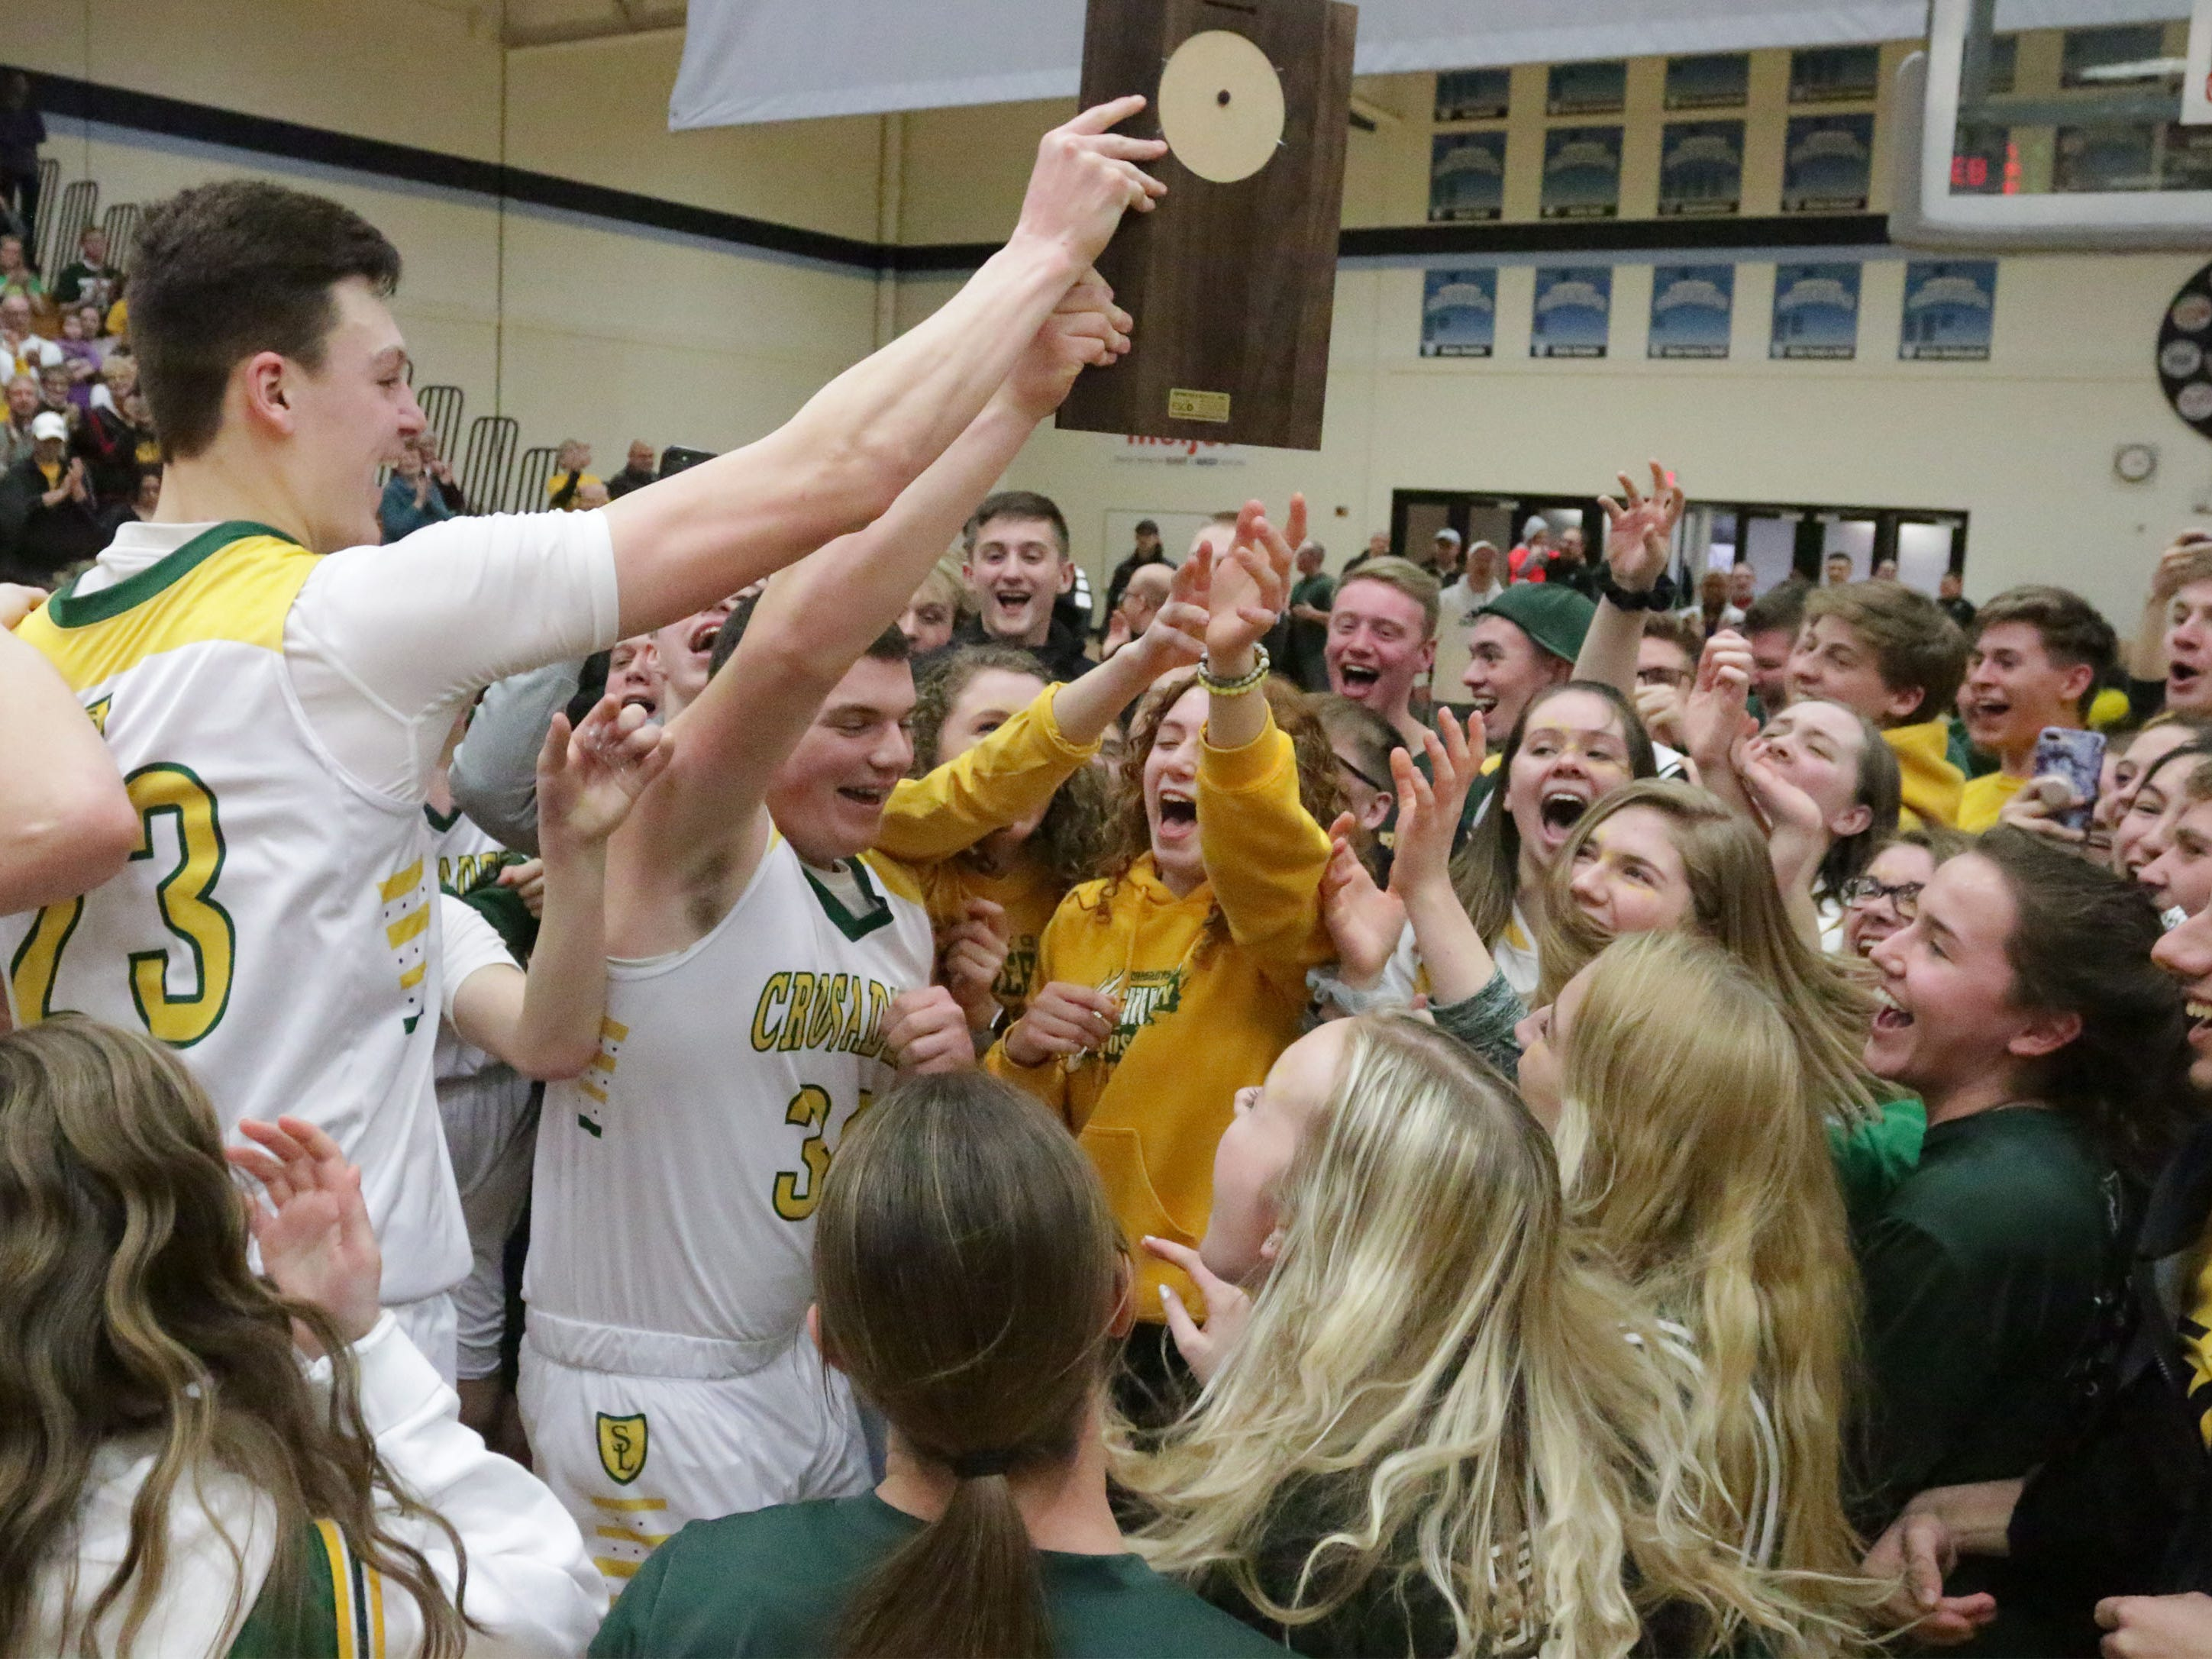 Sheboygan Lutheran players and fans celebrate their 83-69 win over Rio at the WIAA Div. 5 Sectional, Saturday, March 9, 2019, in Sheboygan, Wis.